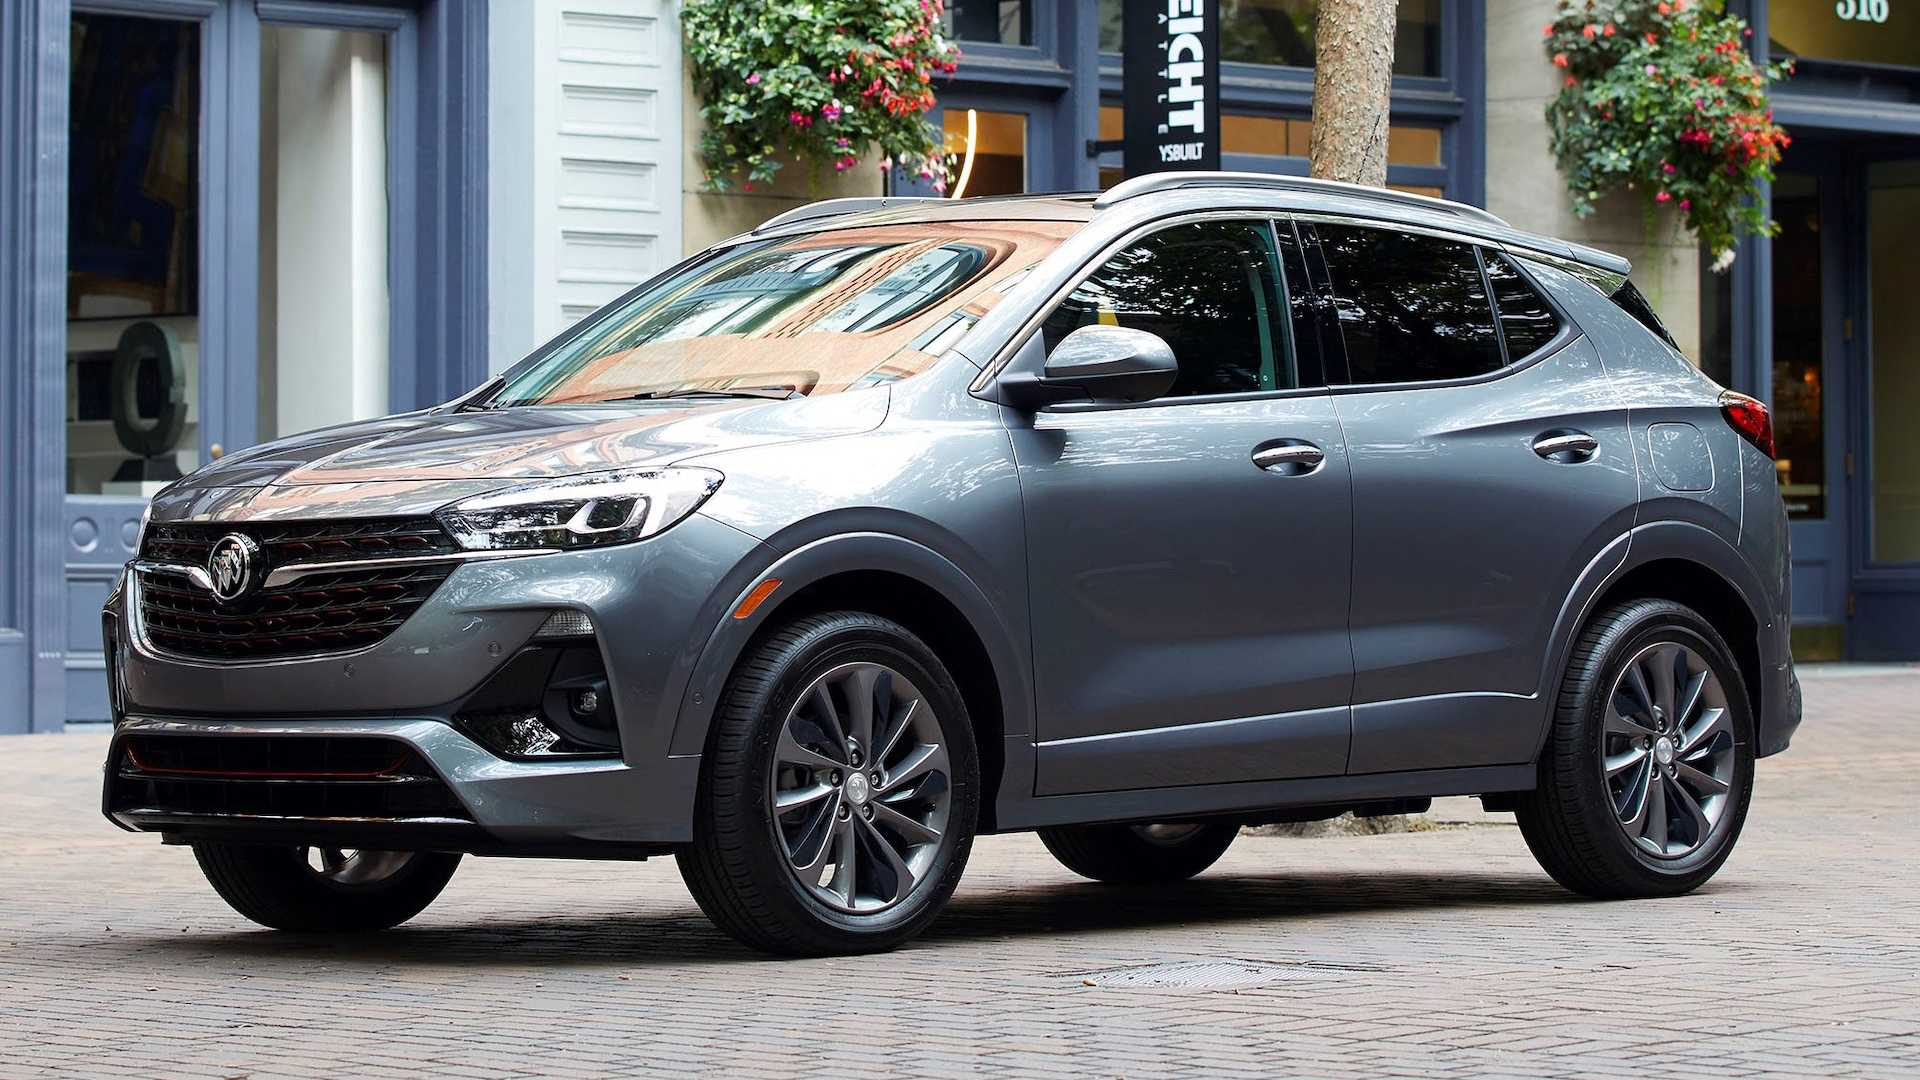 2021 Buick Encore Gx Details Emerge: Styling Tweaks, More Tech When Will The New 2022 Buick Encore Gx Be Available